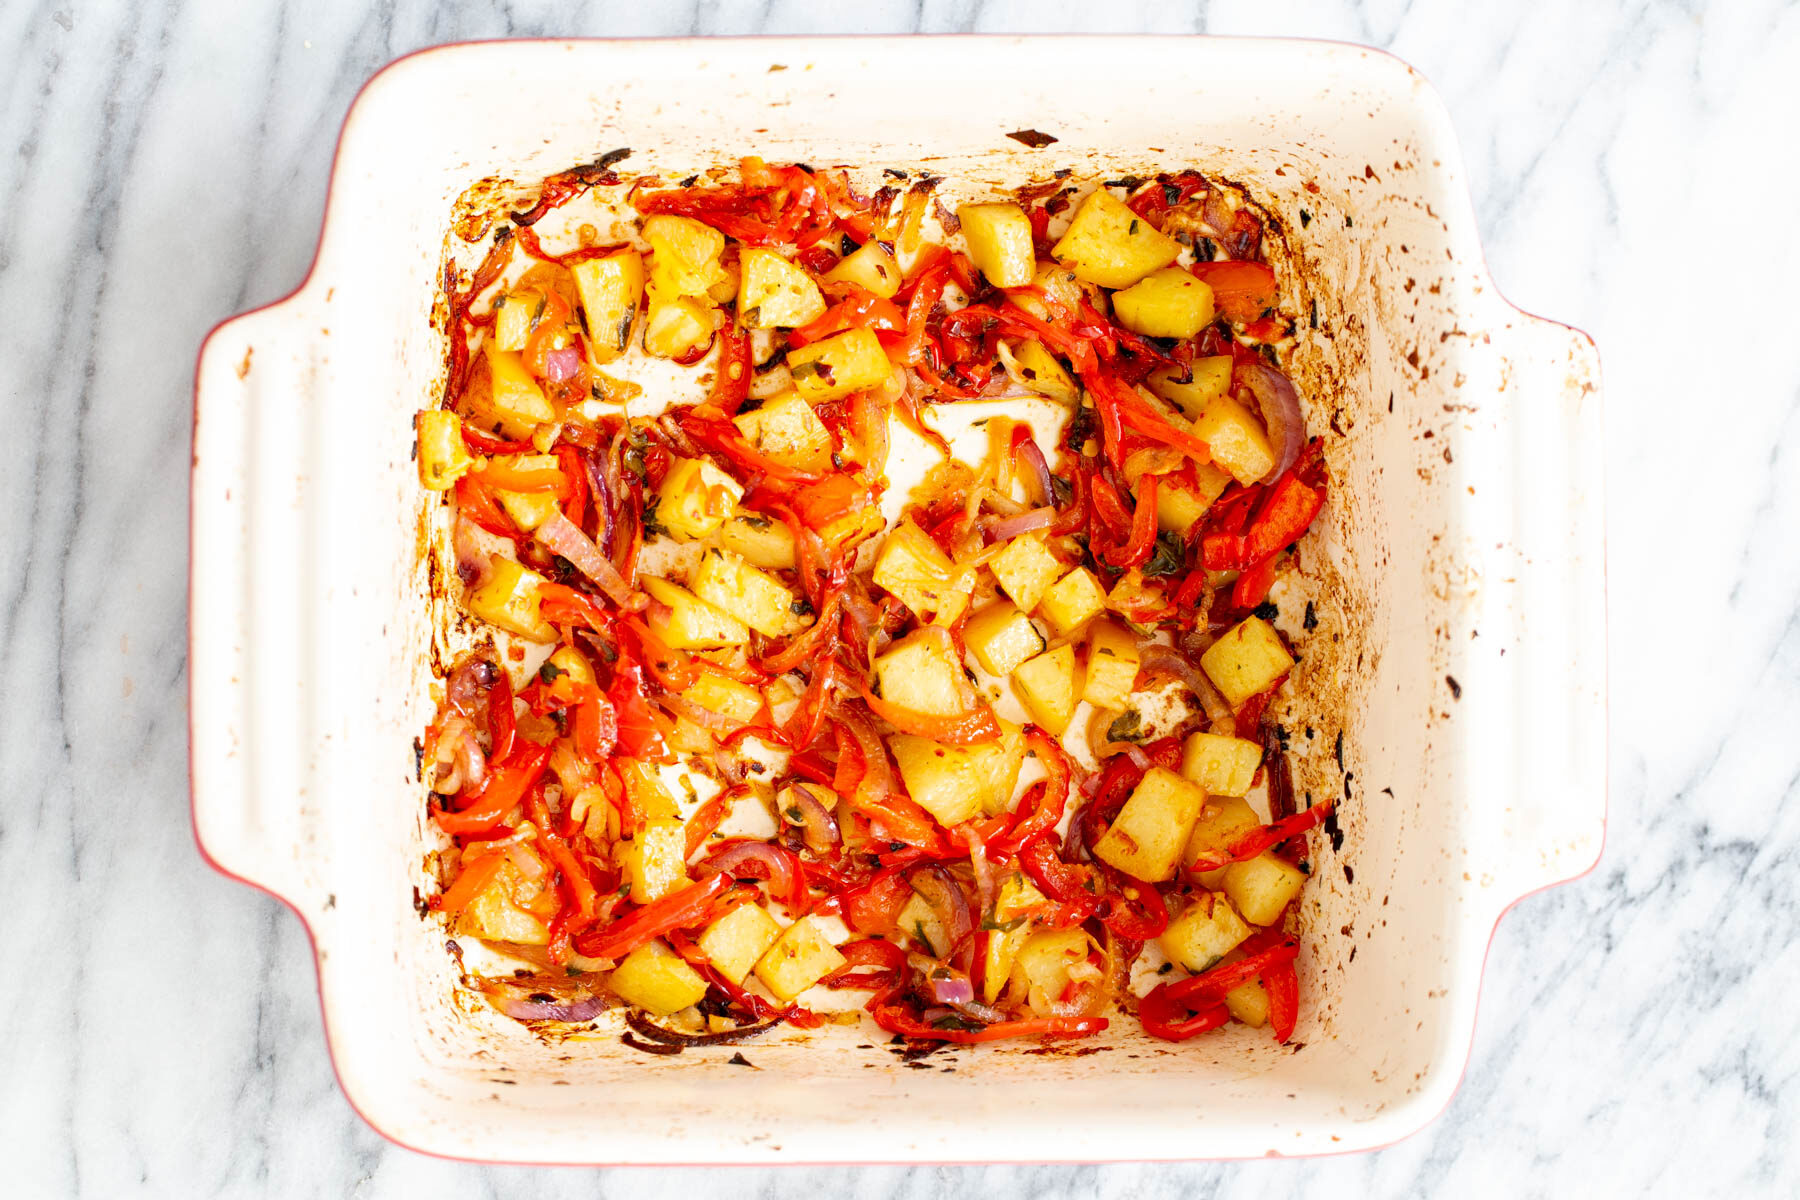 roasted bell peppers, onion and potatoes in a casserole dish